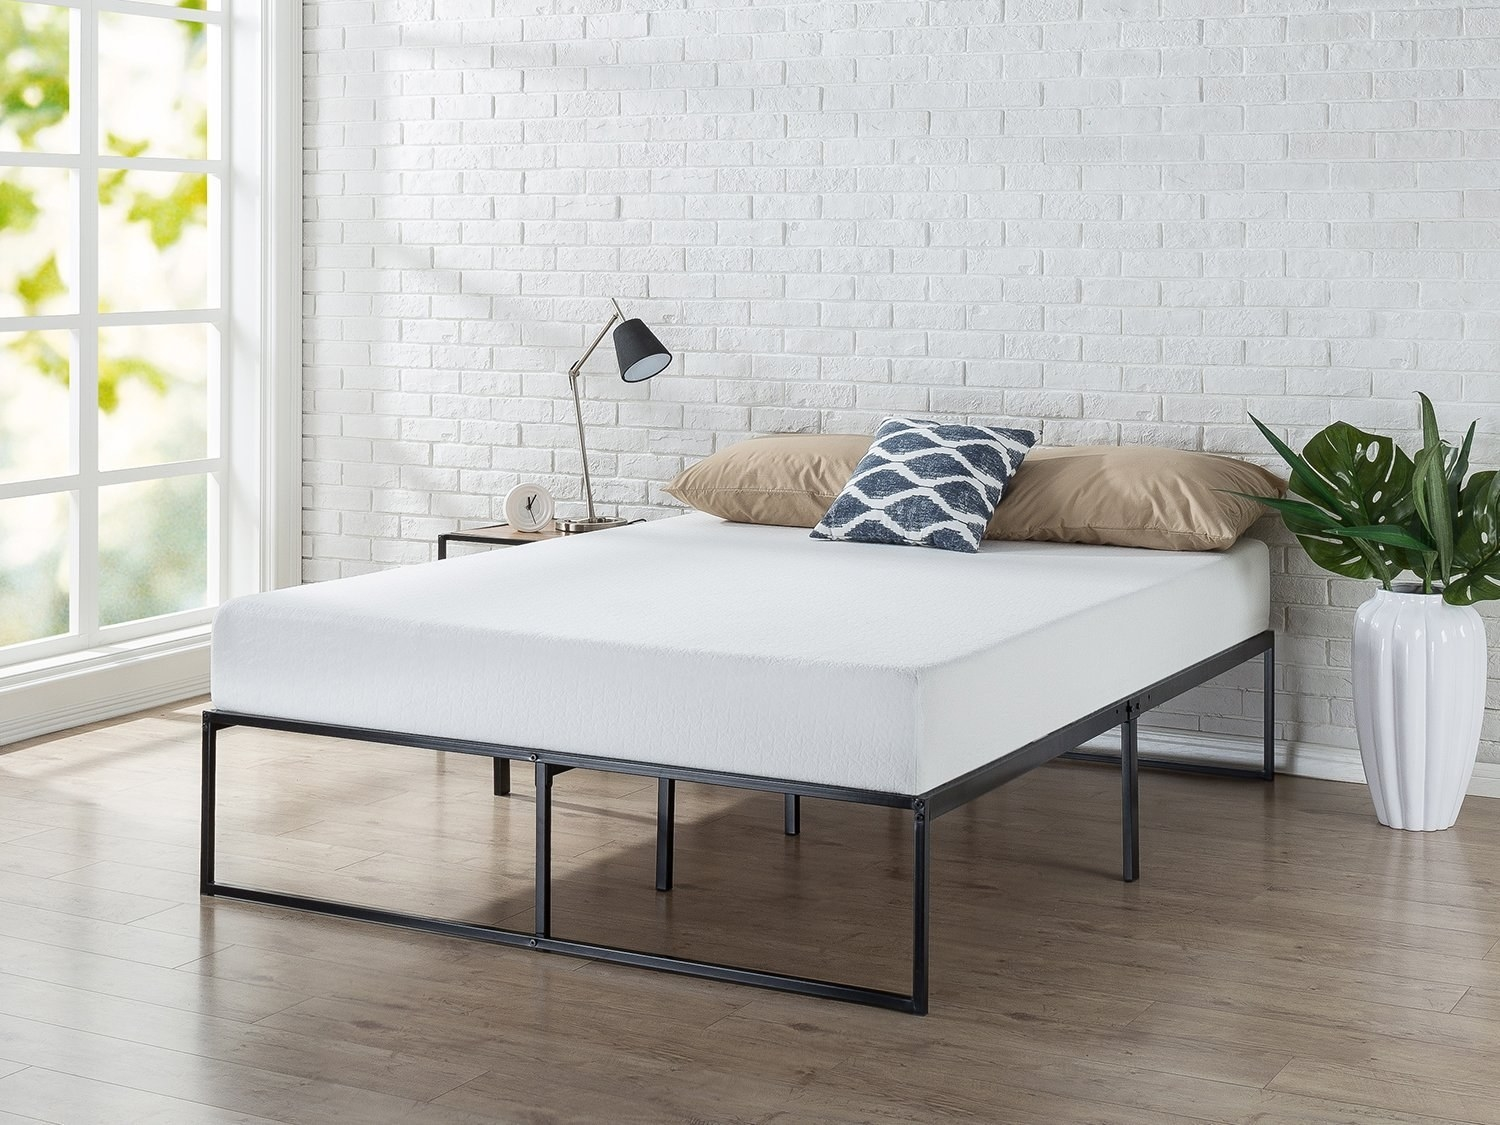 side view of the simple steel bed frame